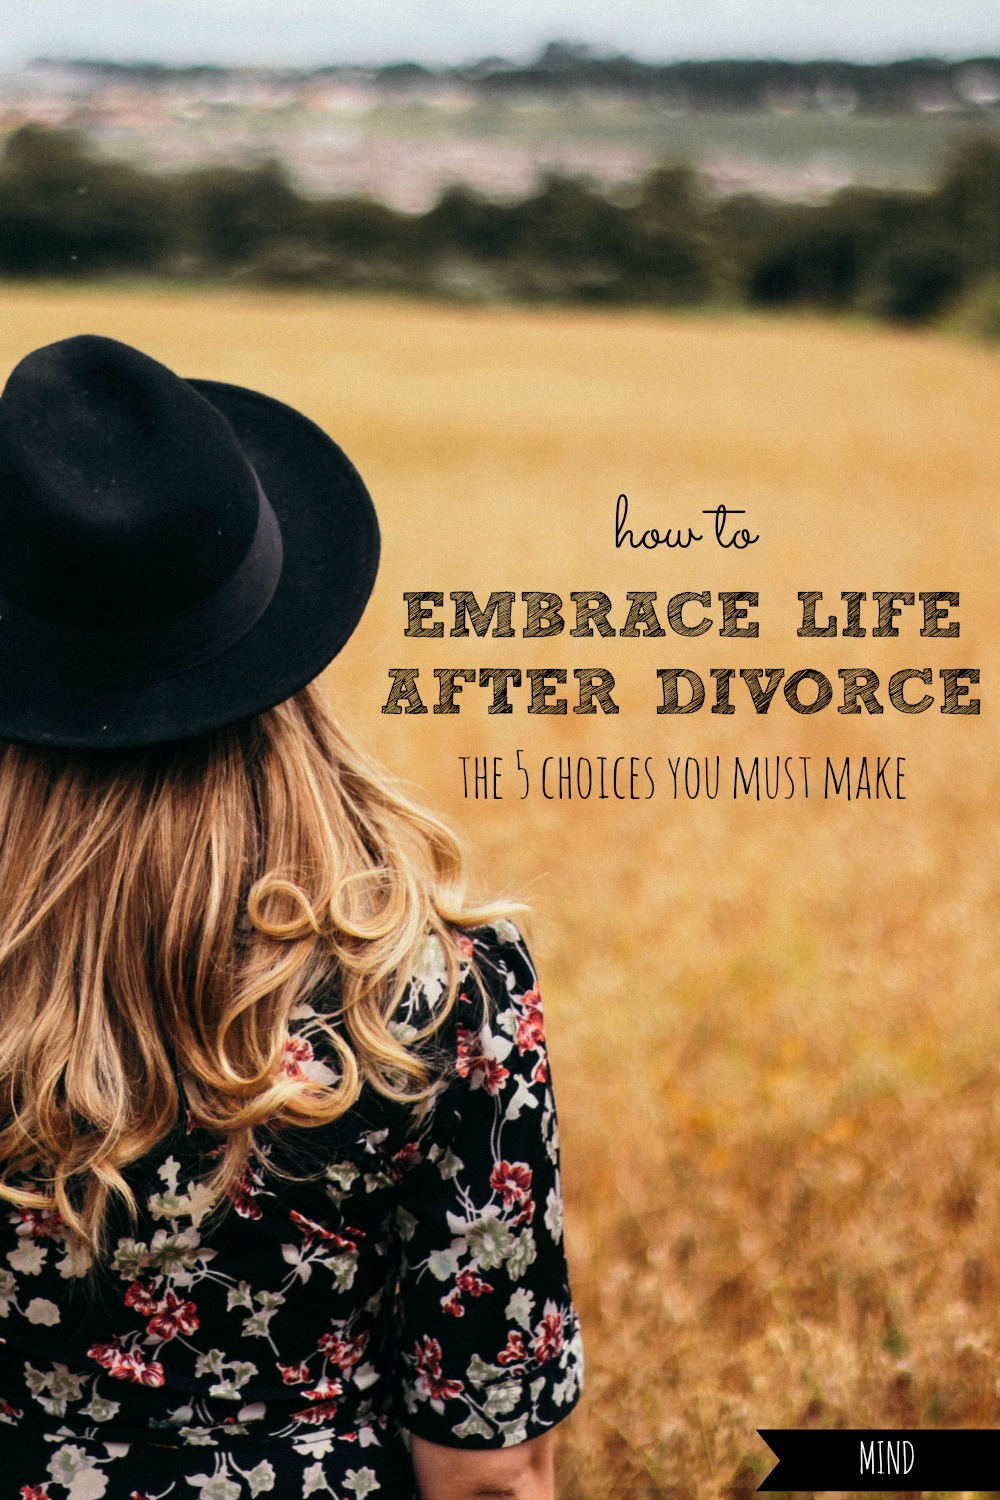 Are you wondering how you'll ever survive divorce? Here are the 5 choices you can and MUST make to embrace life after divorce. Make these decisions TODAY! #embrace #life #after #divorce #divorced #divorcee #lesson #lessons #choice #choices #decision #decisions #roll #punches #root #cause #learn #past #live #forgive #forgiveness #let #go